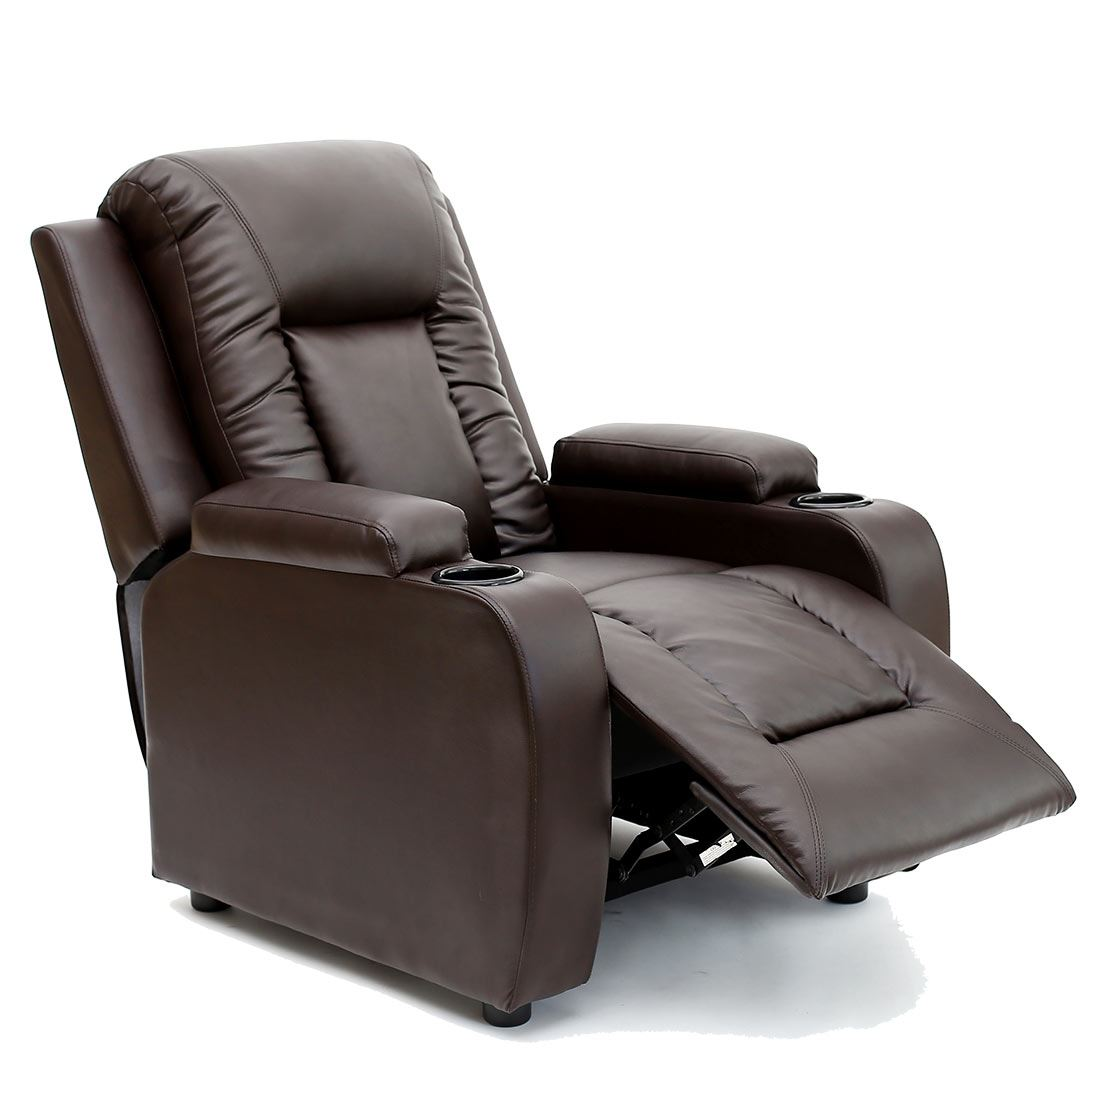 recliner gaming chair disney princess upholstered australia oscar brown leather w drink holders armchair sofa